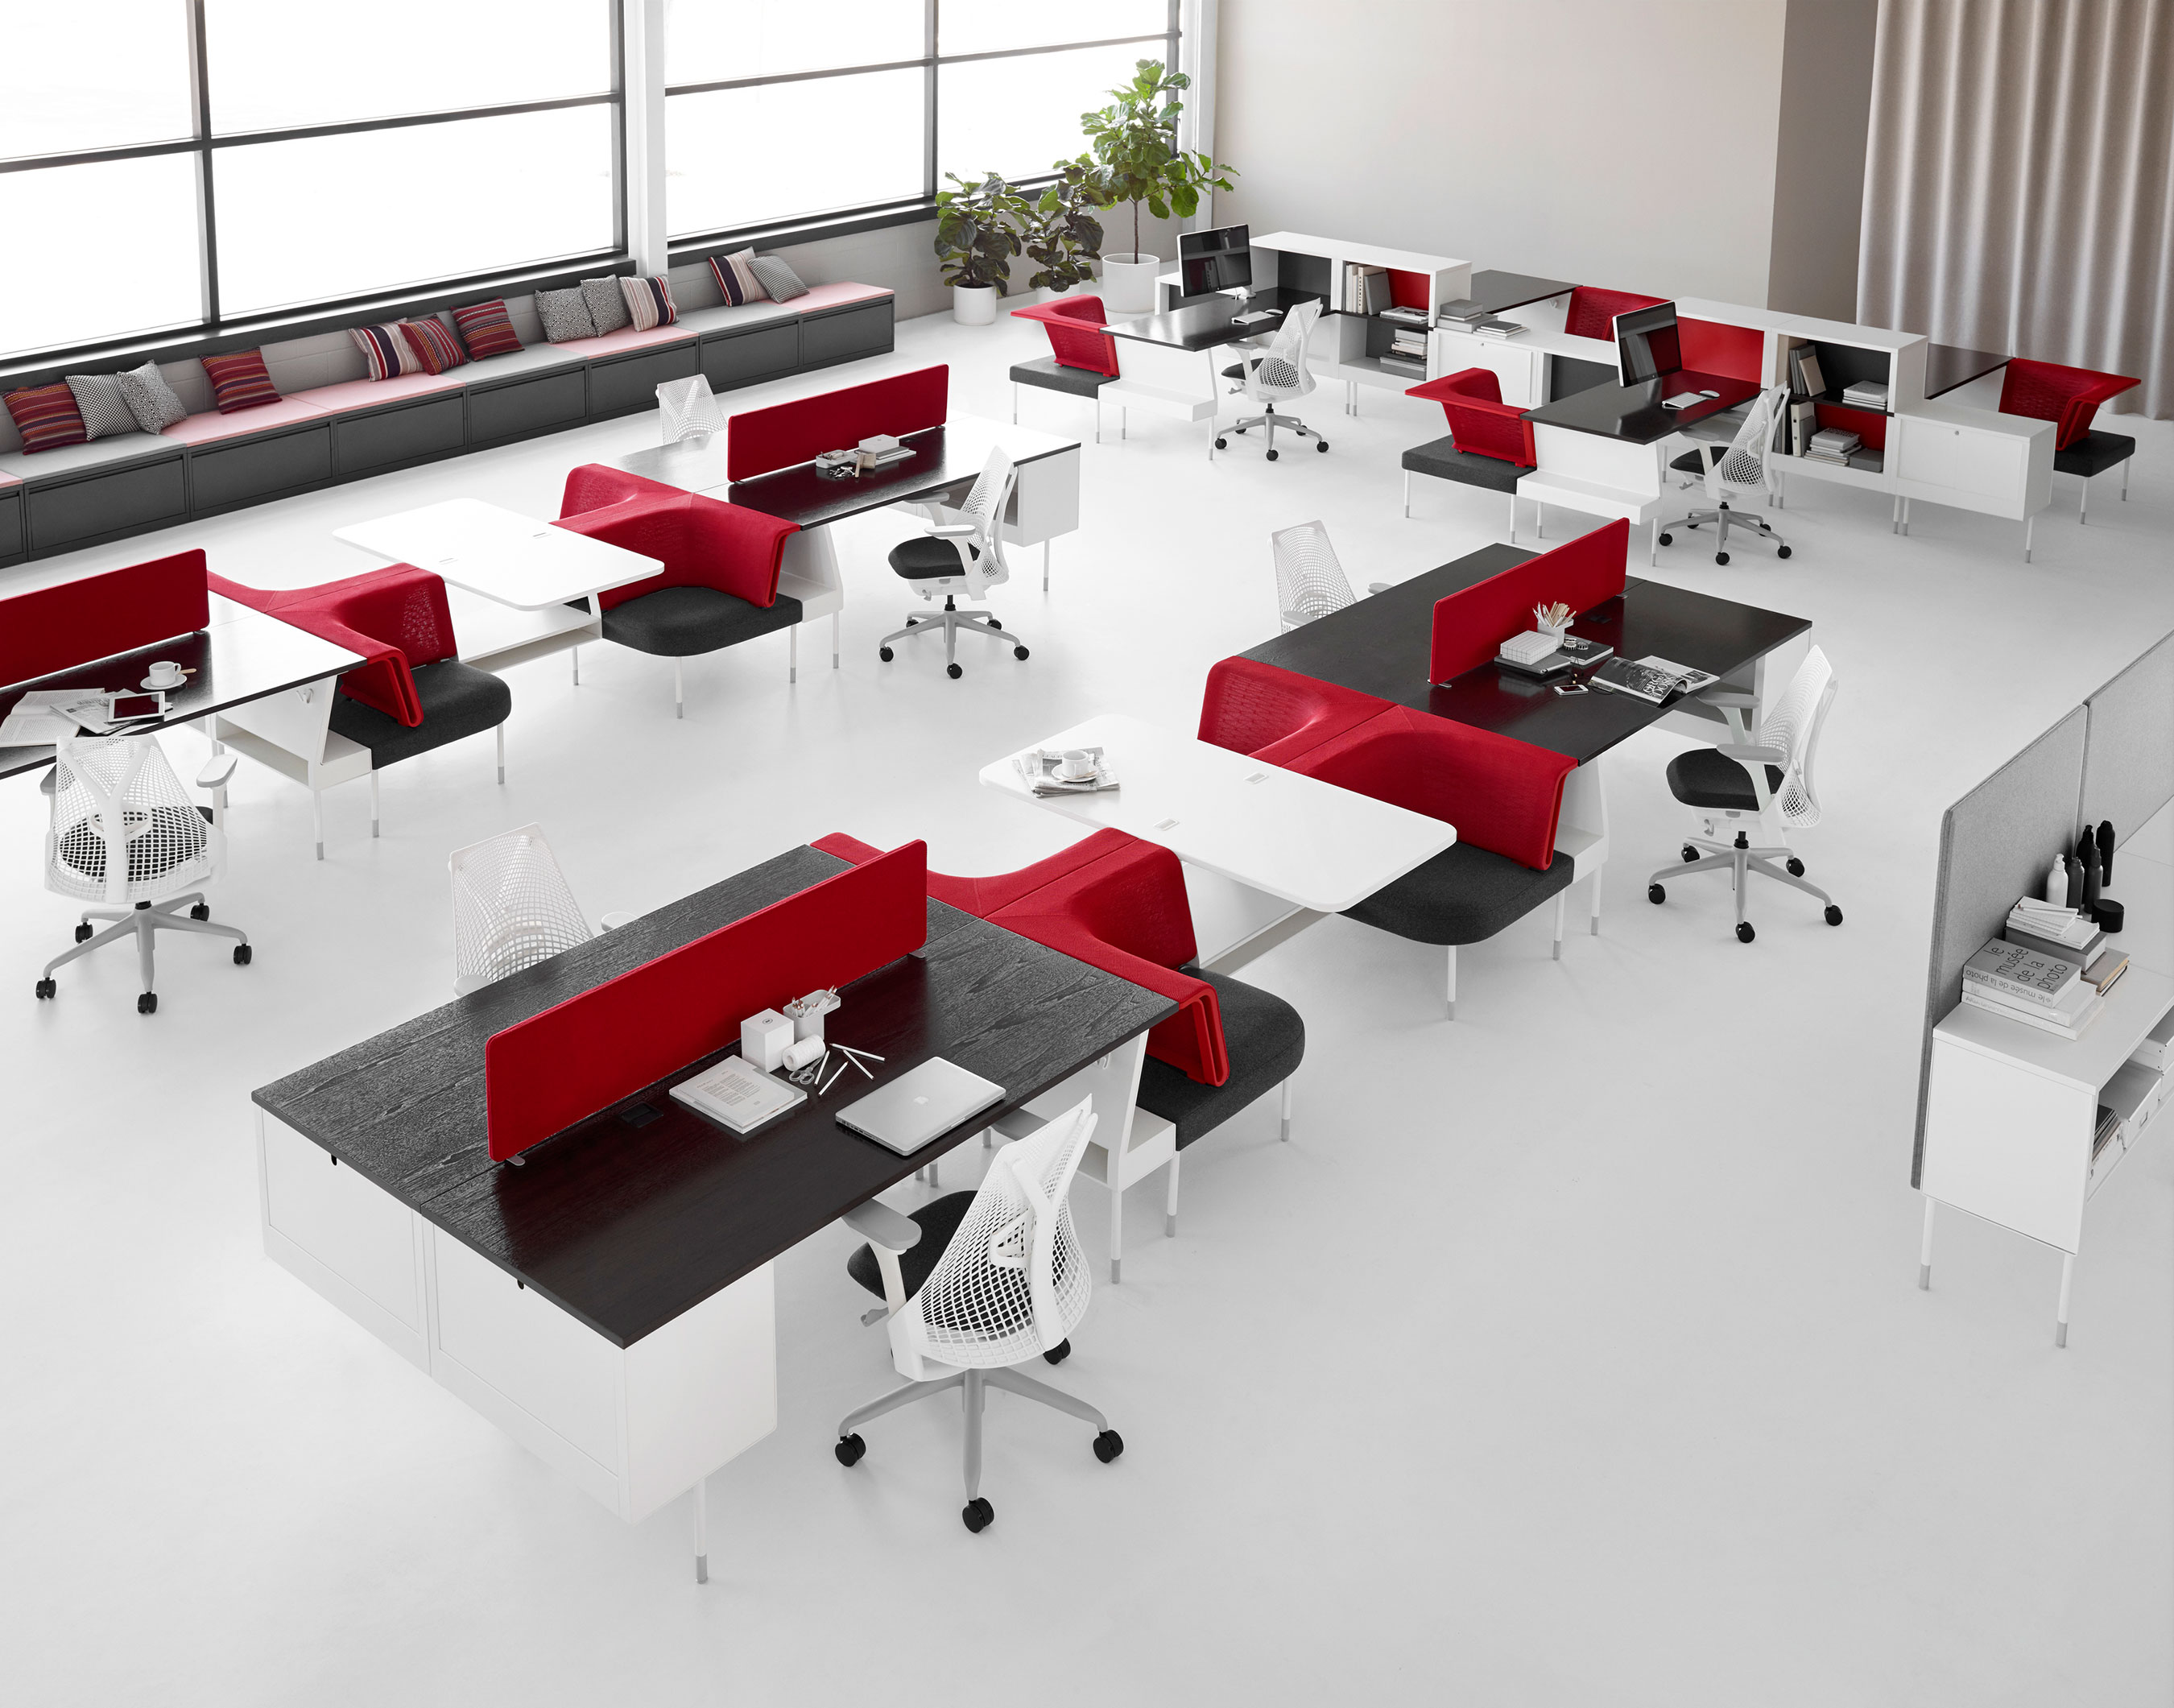 herman miller brings living office℠ to life - previous next